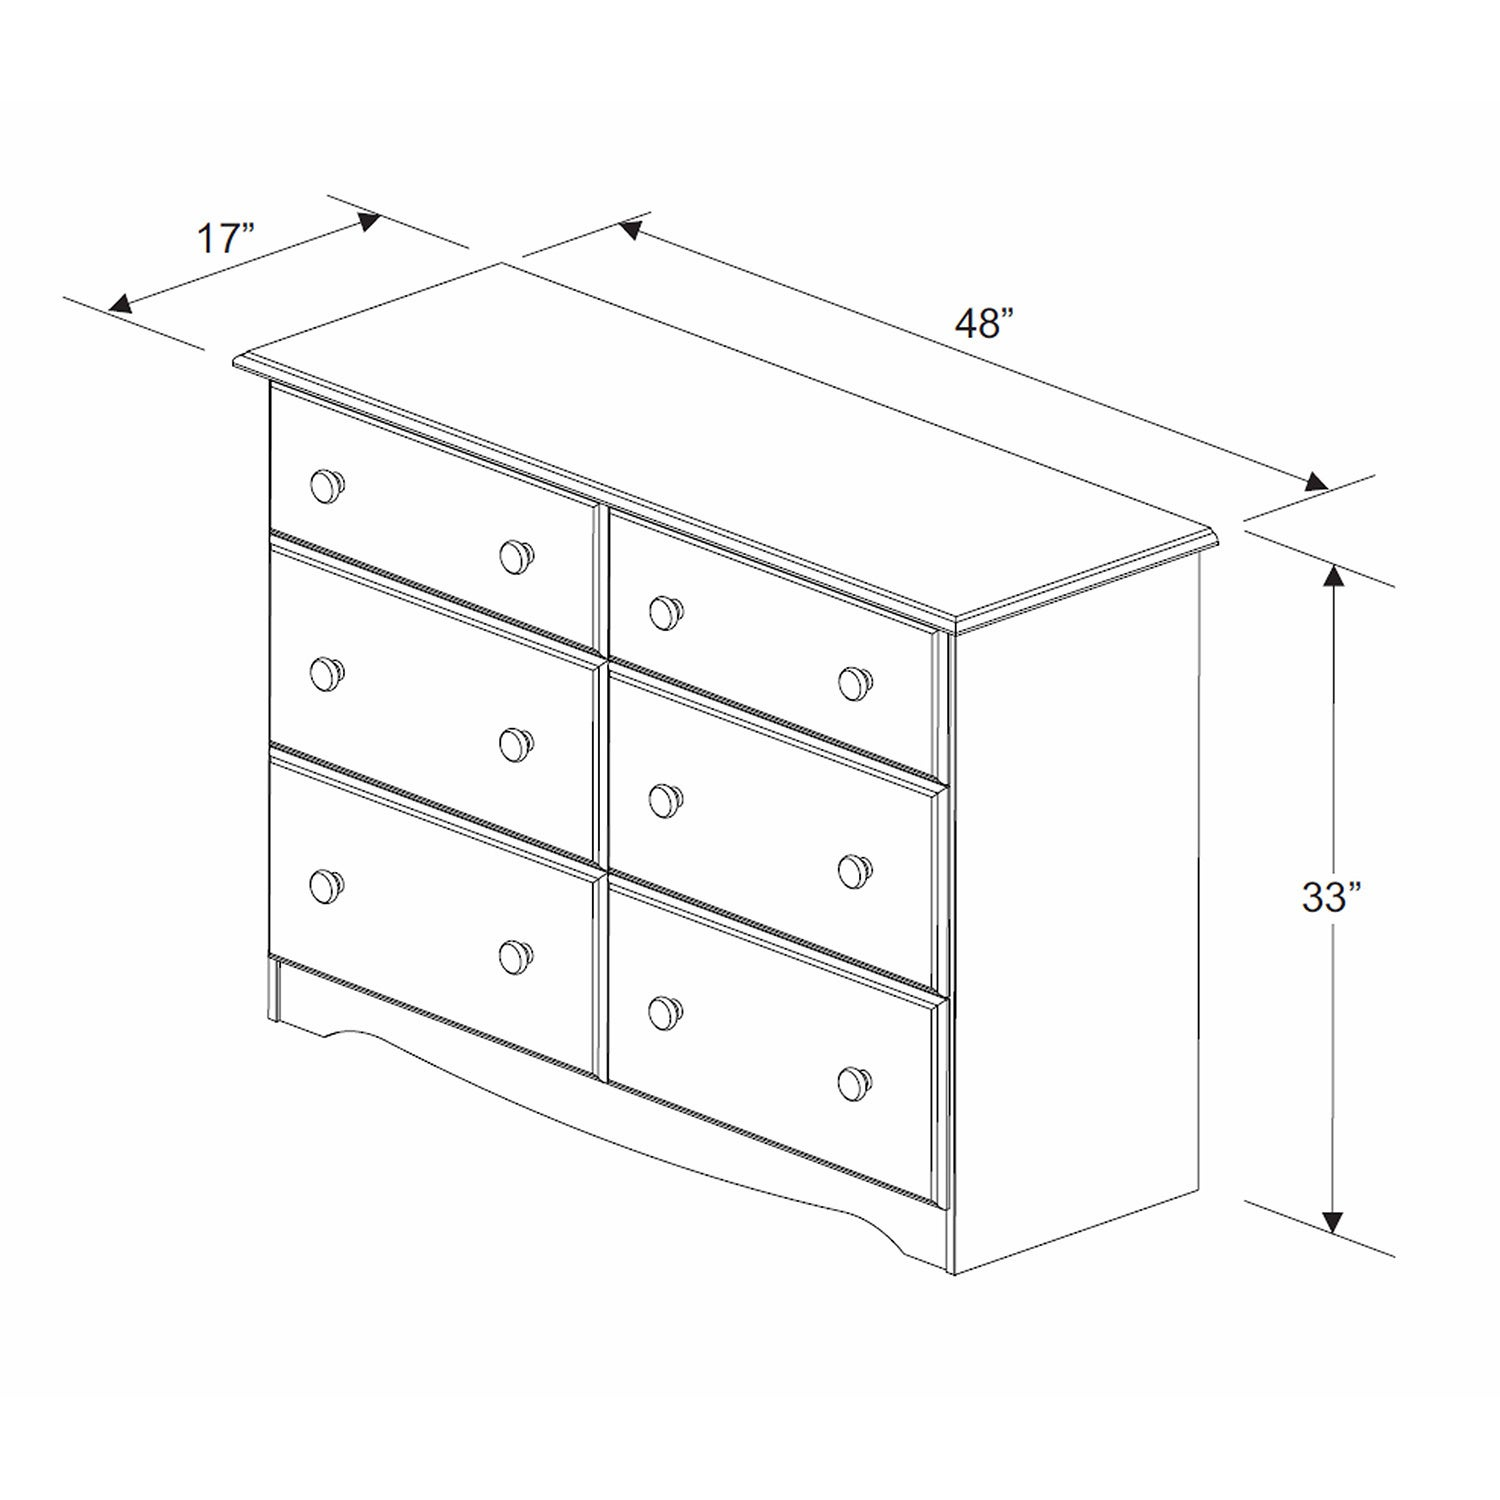 Solid Wood 6 Drawer Double Dresser By Palace Imports Free Shipping Today 9658521